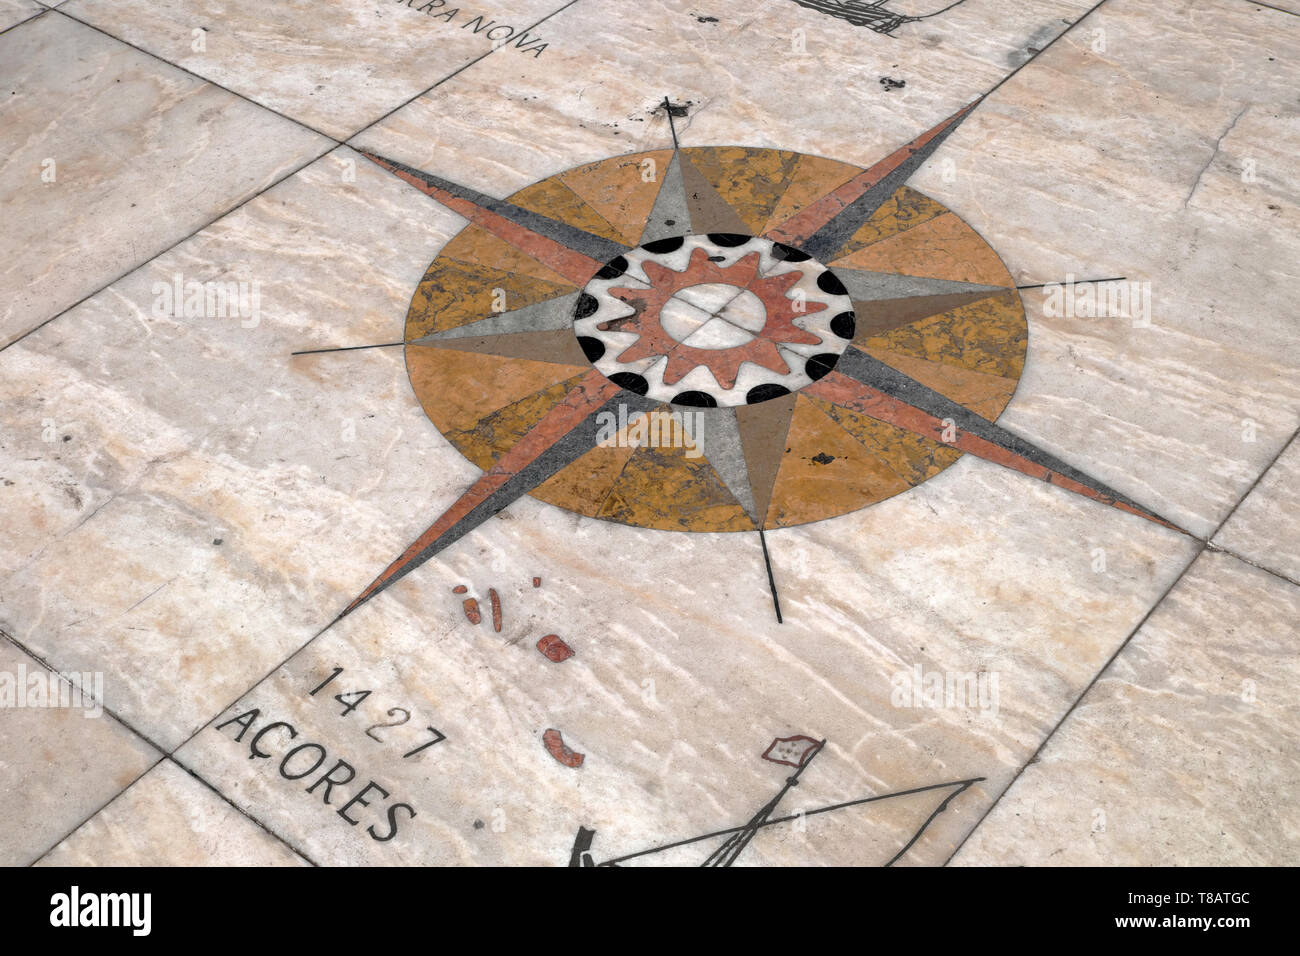 New World Map navigation compass detail pavement tiles on the Tagus River (Rio Tejo) on the waterfront Belem, Lisbon Portugal Europe EU  KATHY DEWITT - Stock Image